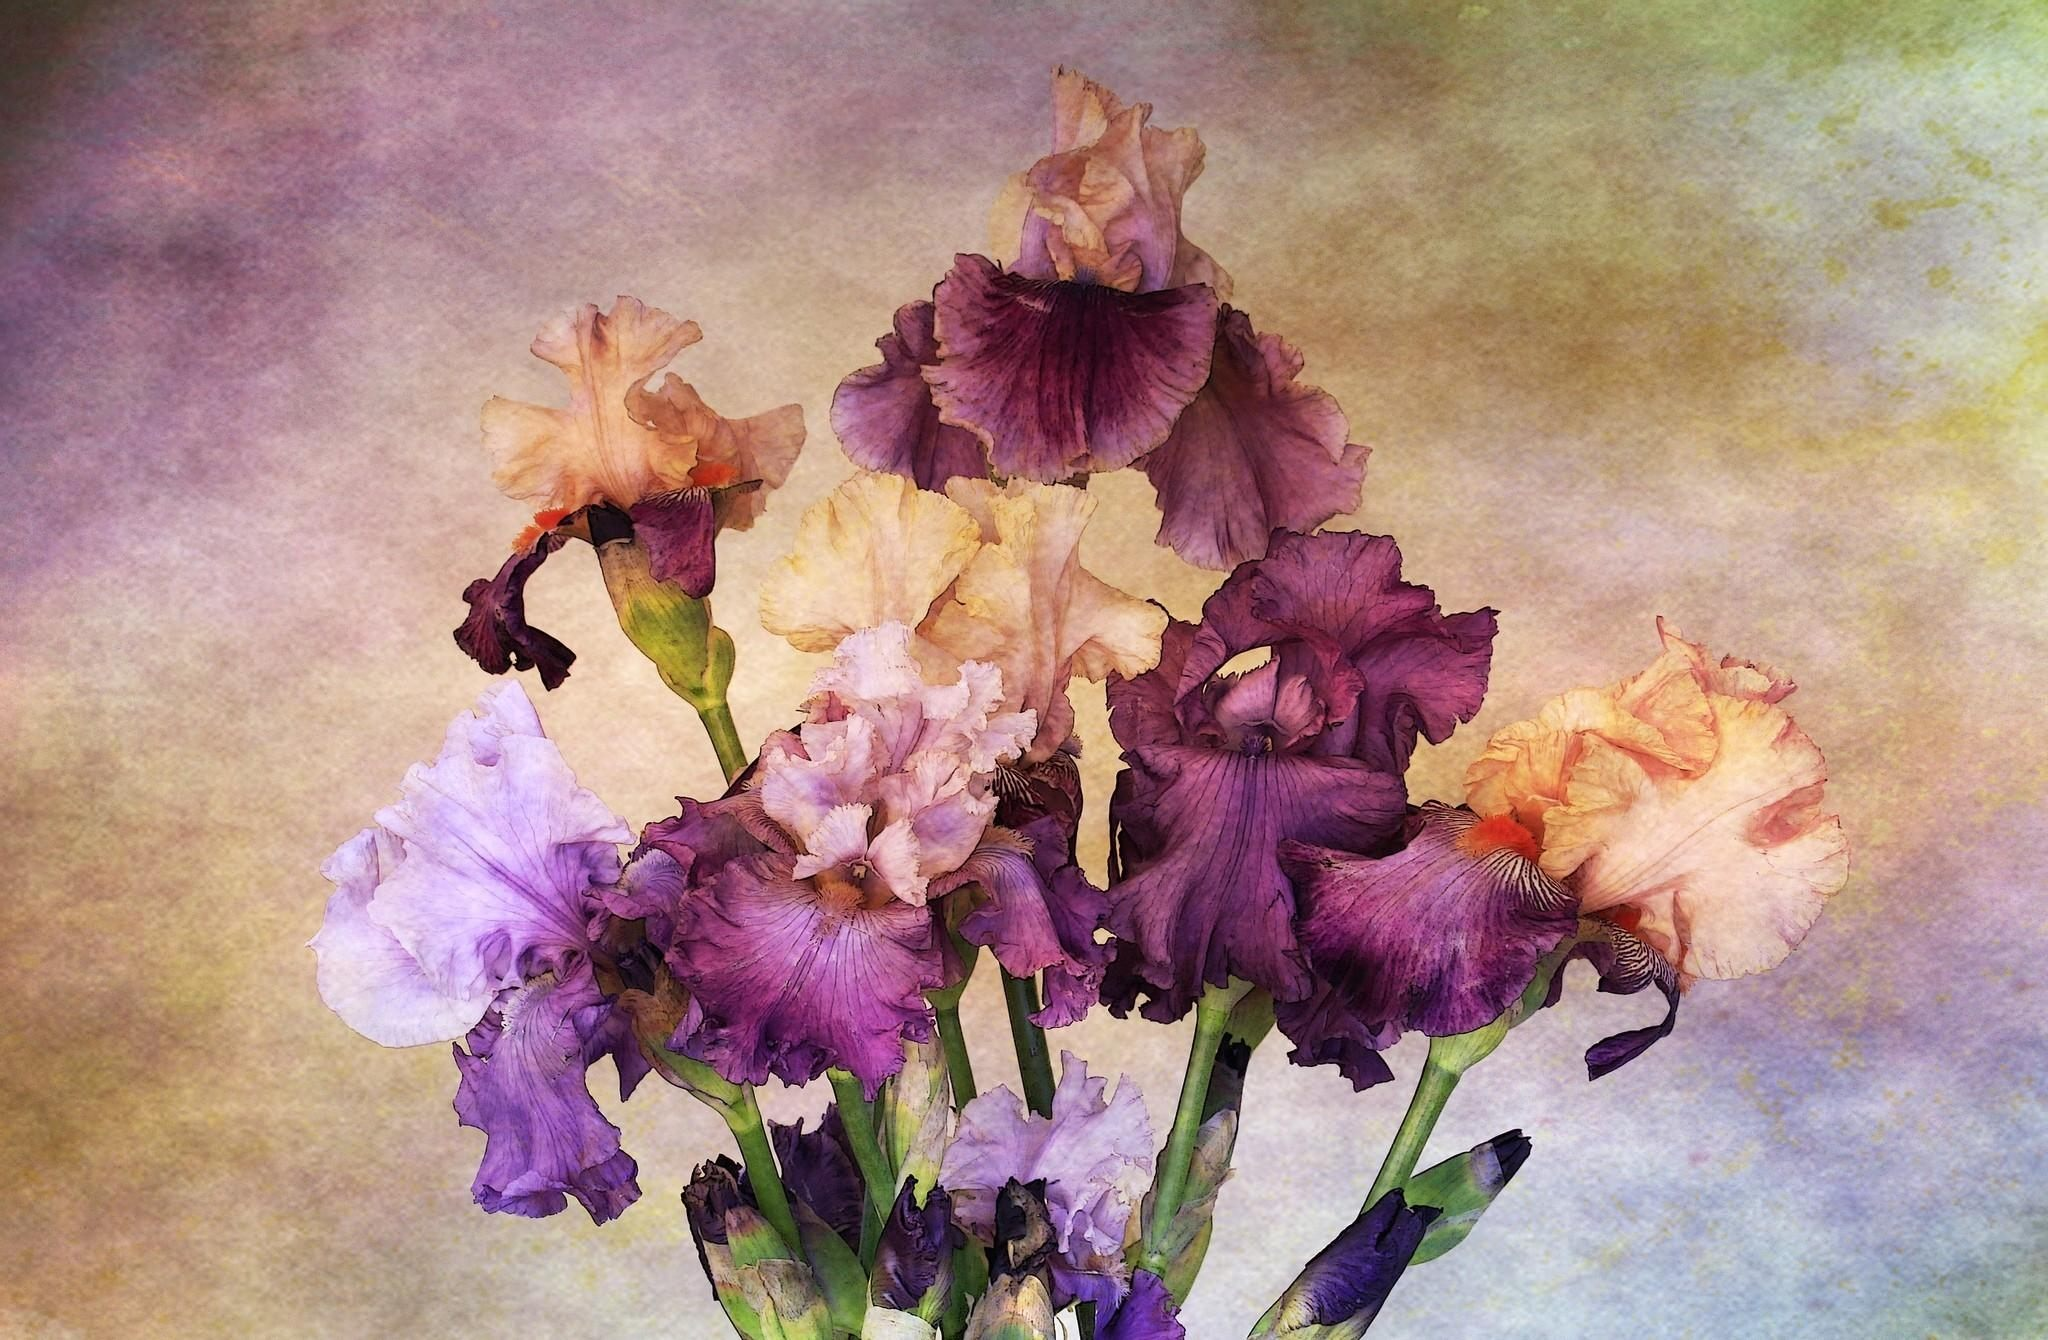 Iris flower painting 9778922 sciencemadesimplefo sms tagsiris flower meaning flower meaningiris flower symbolism amp the meaning of irises in theiris plant wikipediabirdandflower painting wikipedia izmirmasajfo